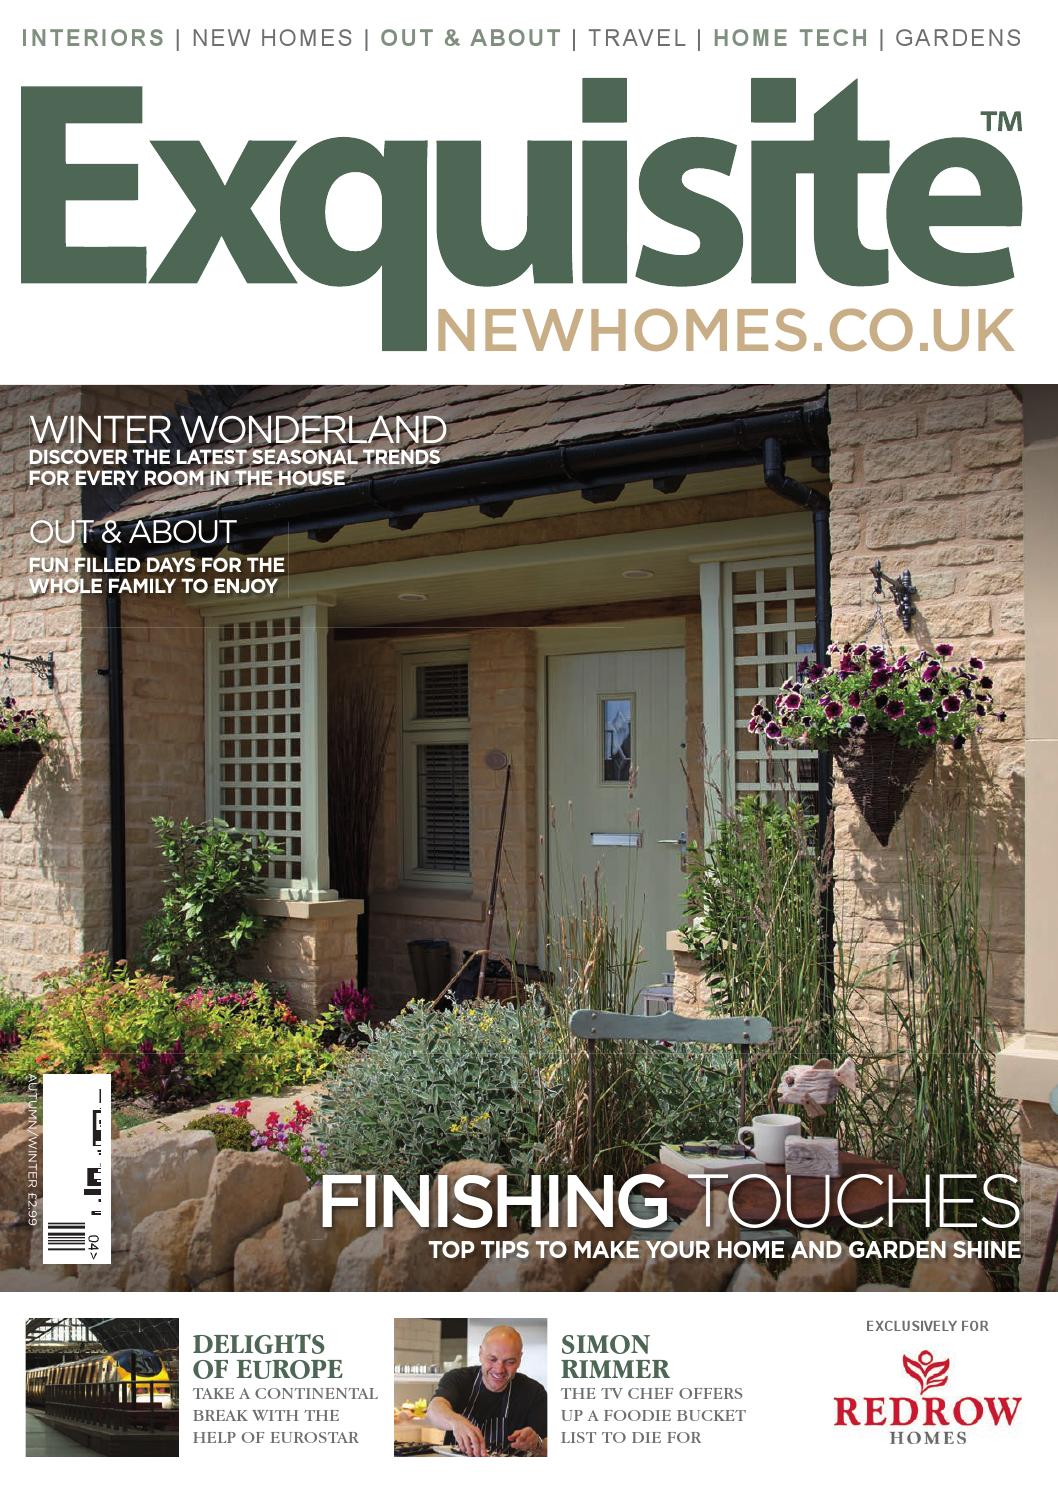 Exquisite New Homes Redrow Homes November 2014 By One Media Issuu